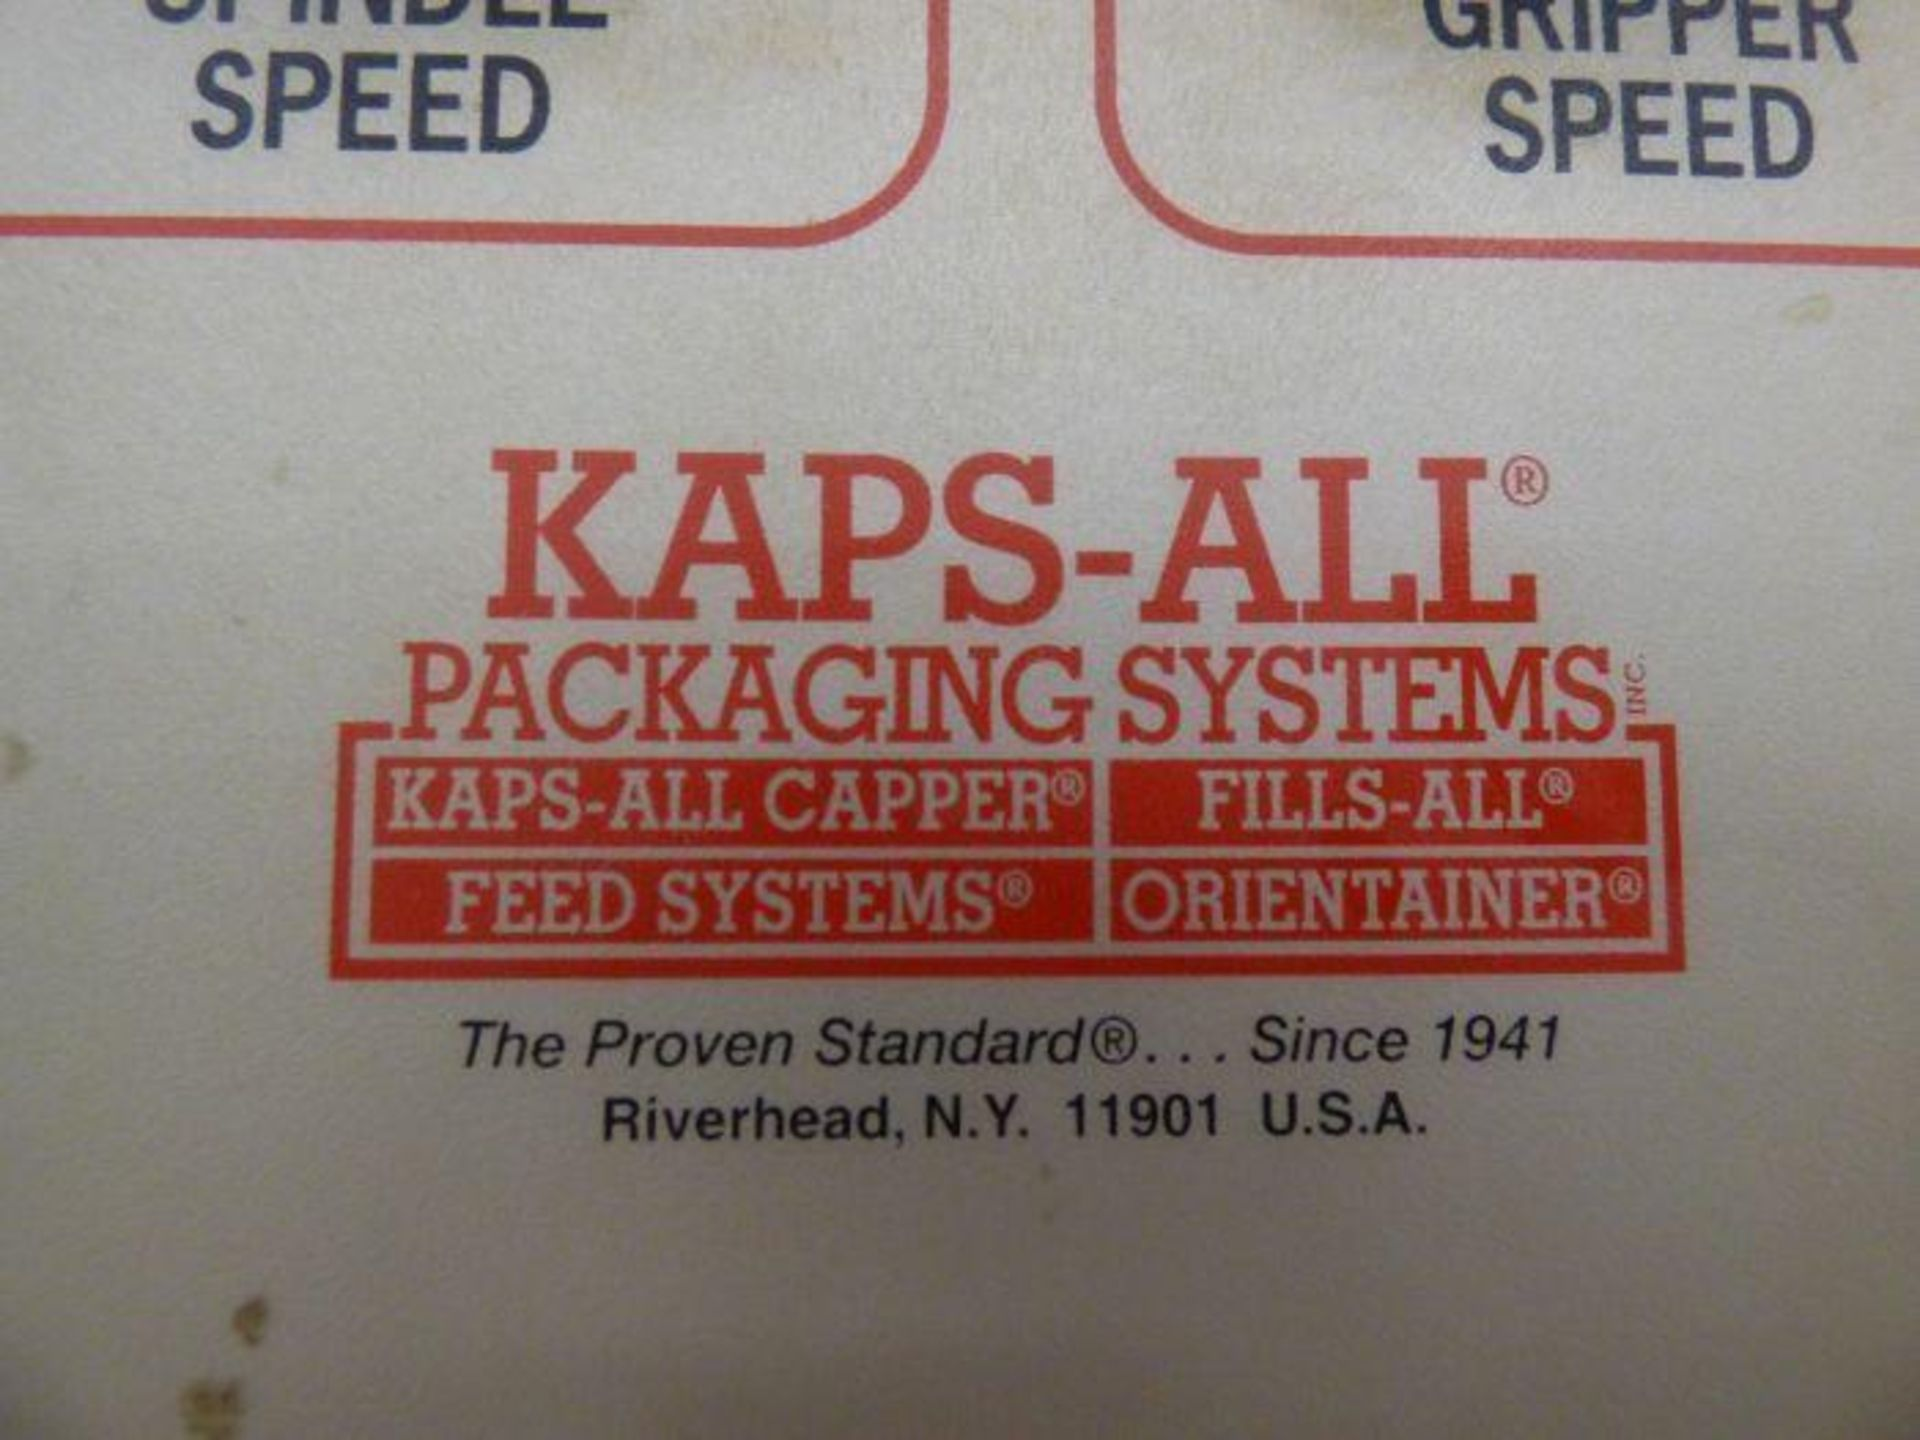 Lot 1218 - Kaps-All Stainless Steel Horizontal Cap Torquer with Spare Parts